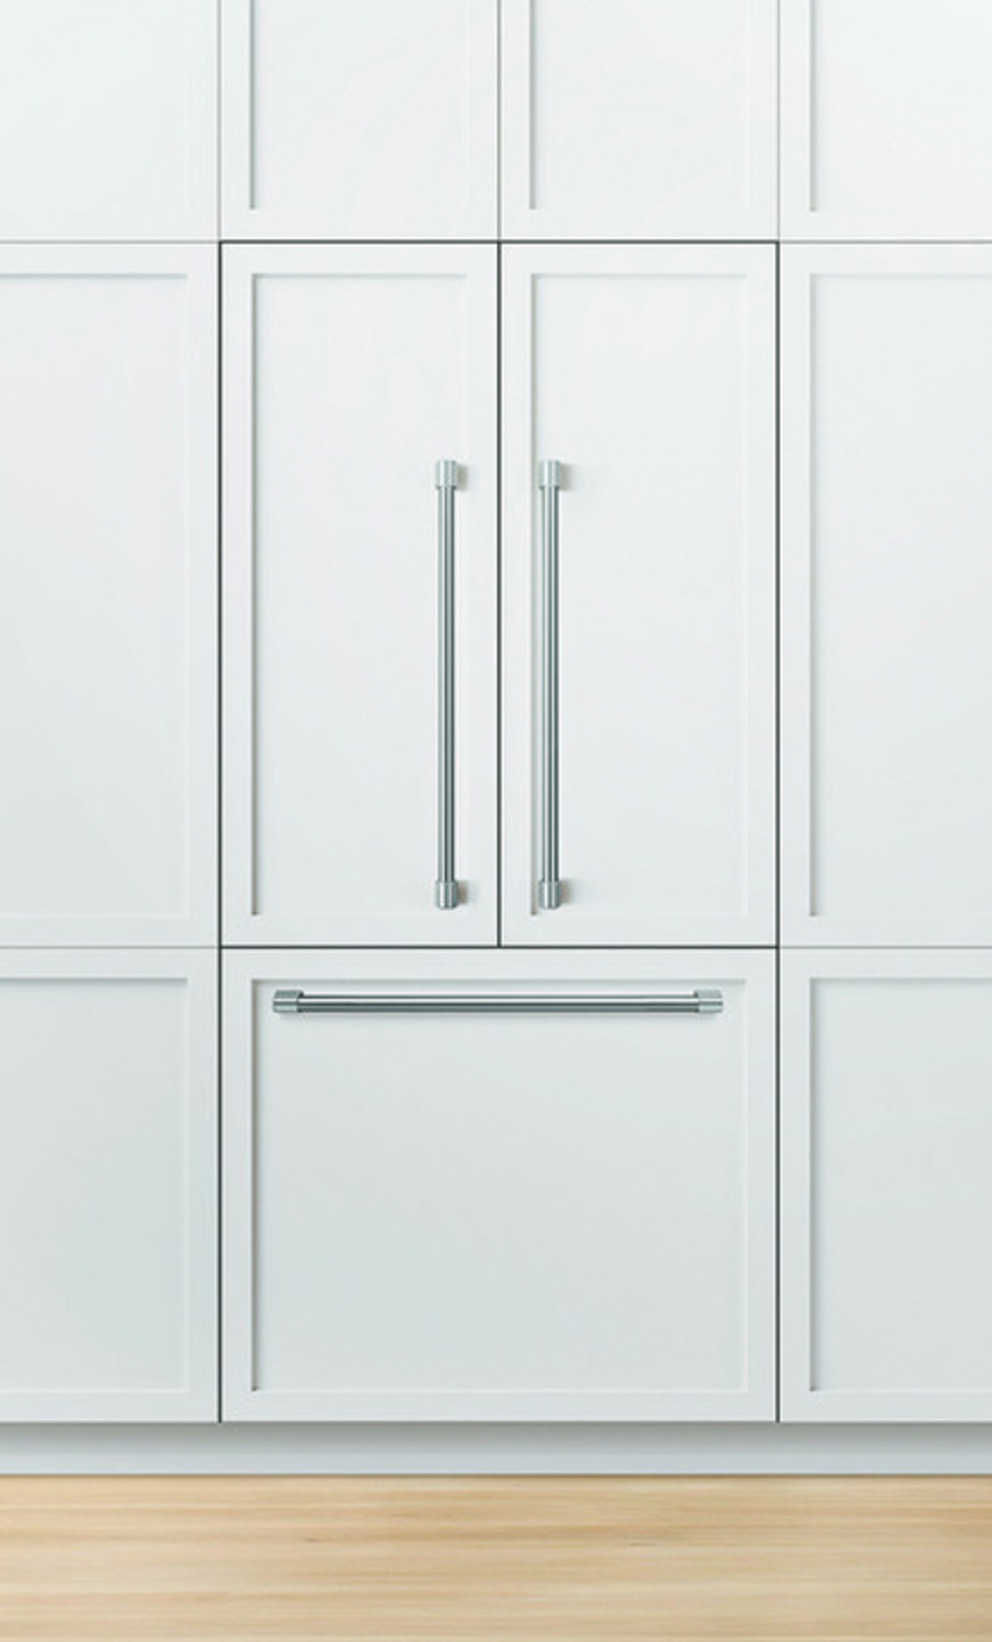 Fridges DCS RS36A80JC1 (80'' DCS)